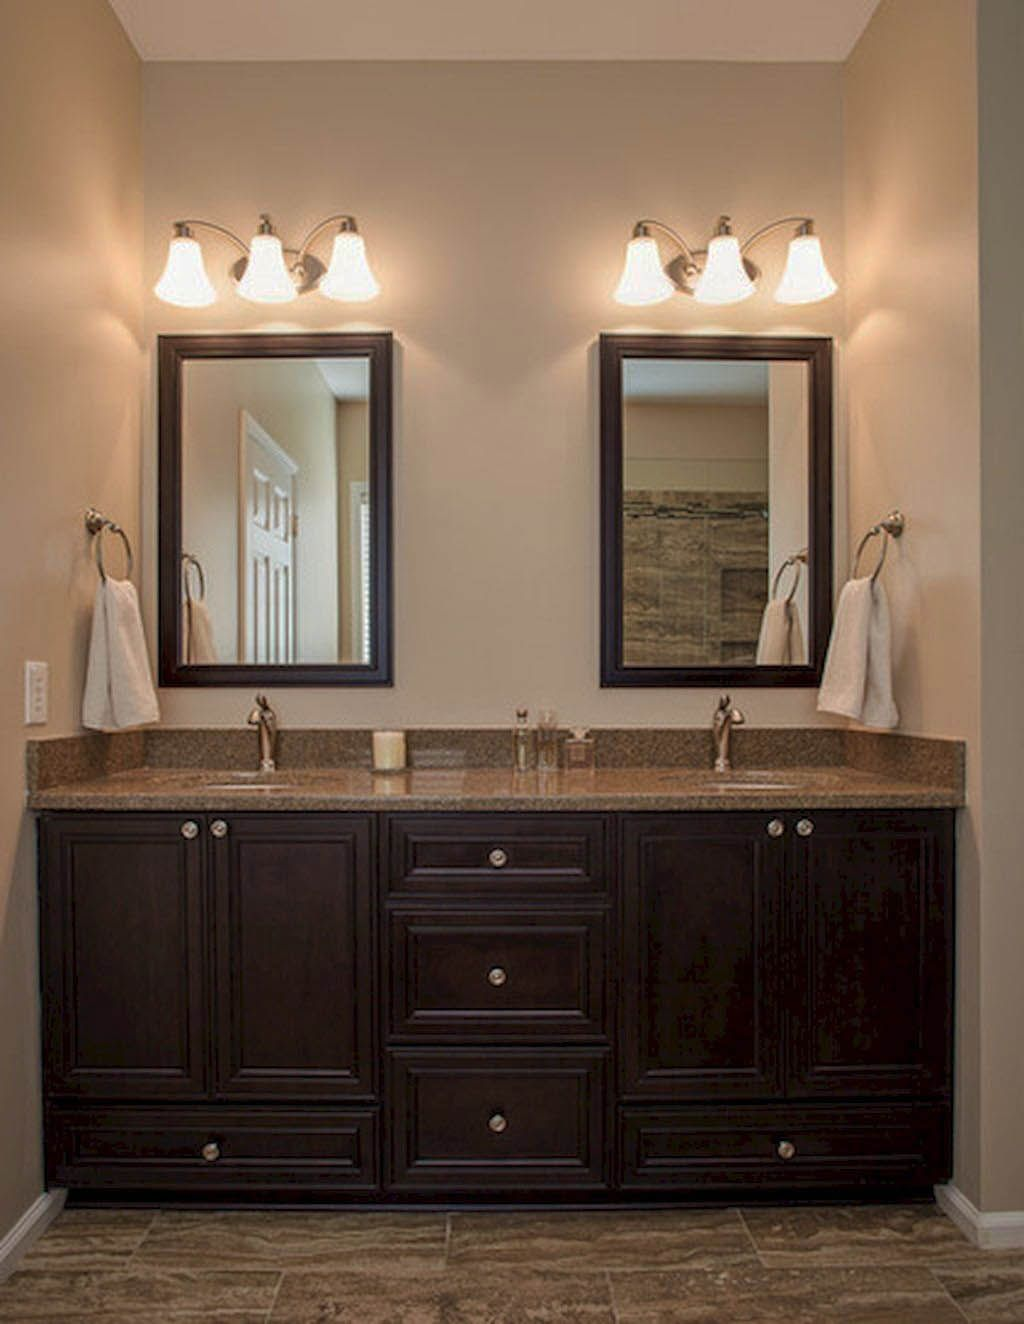 modish bathroom vanity lights with electrical outlet that will blow rh pinterest com